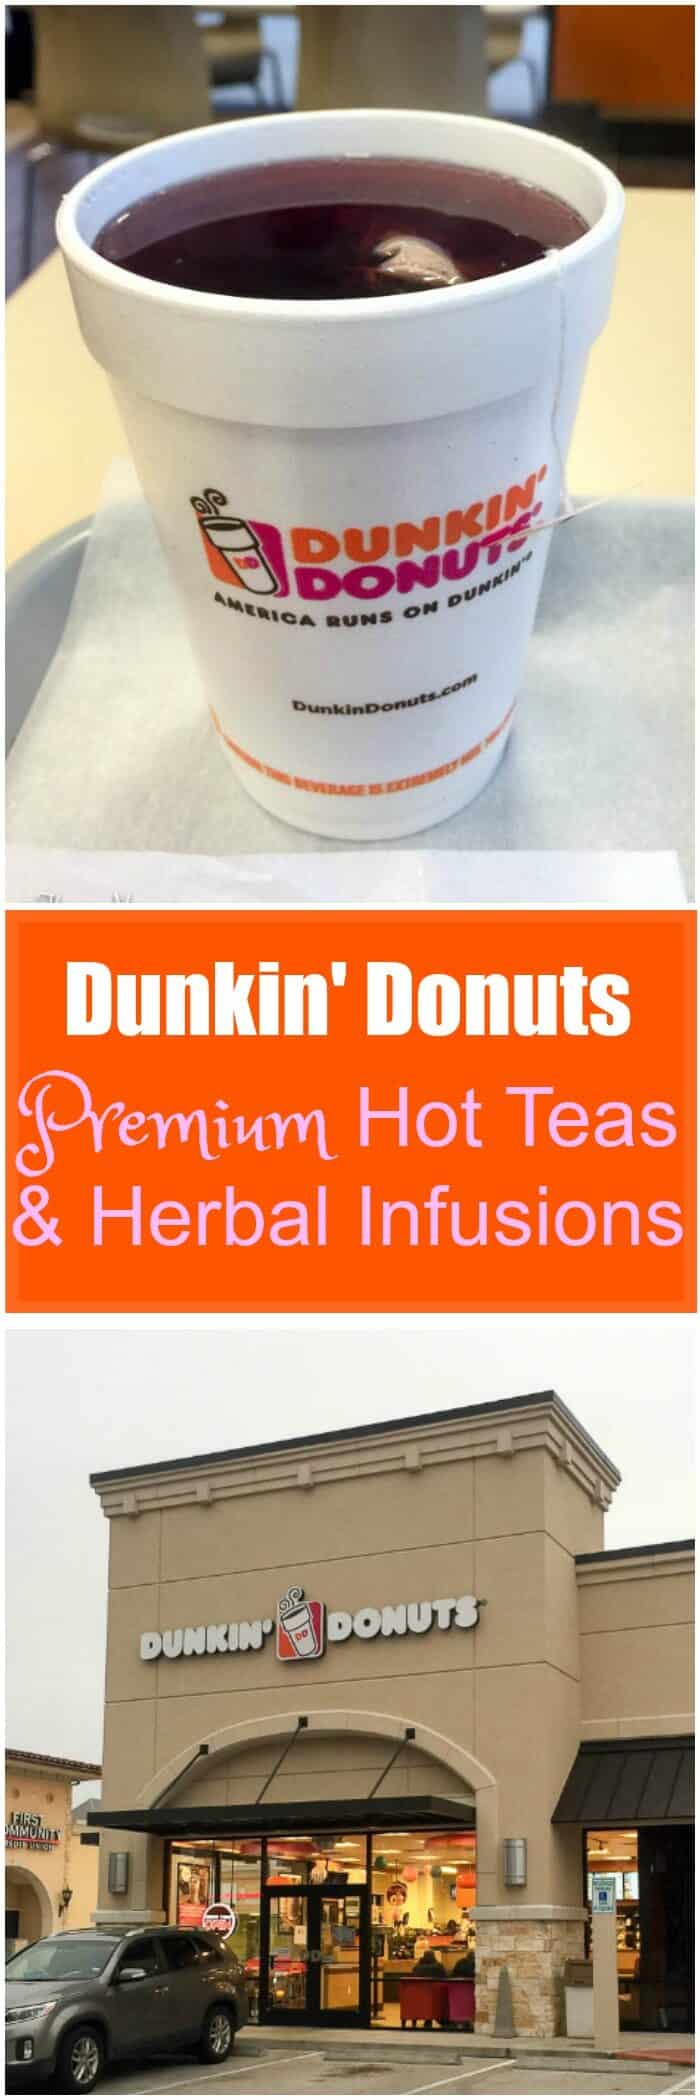 Dunkin Donuts Premium Hot Teas & Herbal Infusions